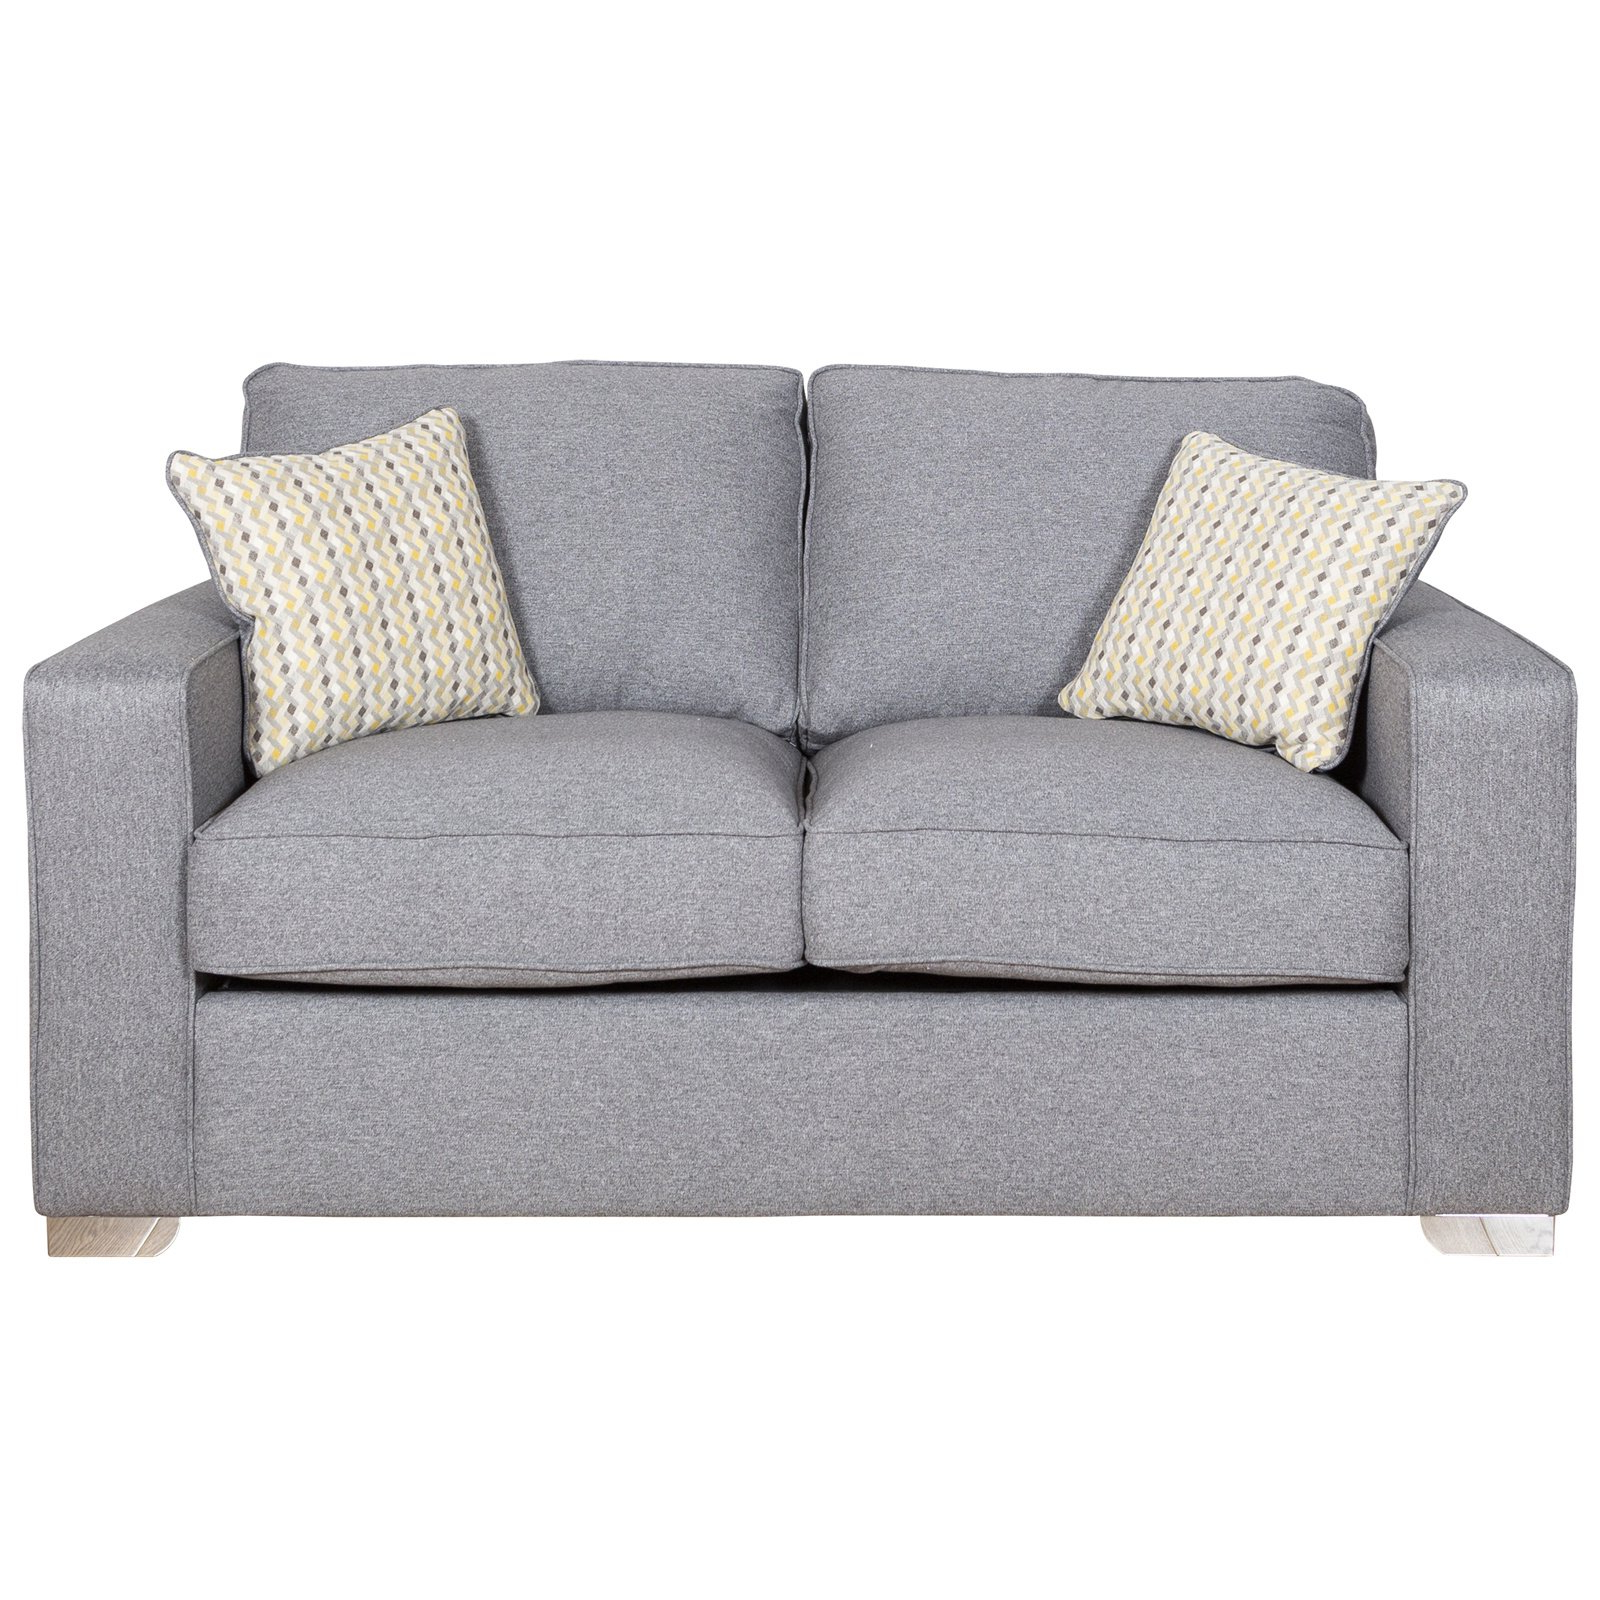 2019 Marino 120cm Suffolk Grey Sofa Bed Intended For Gray Sofas (View 15 of 20)